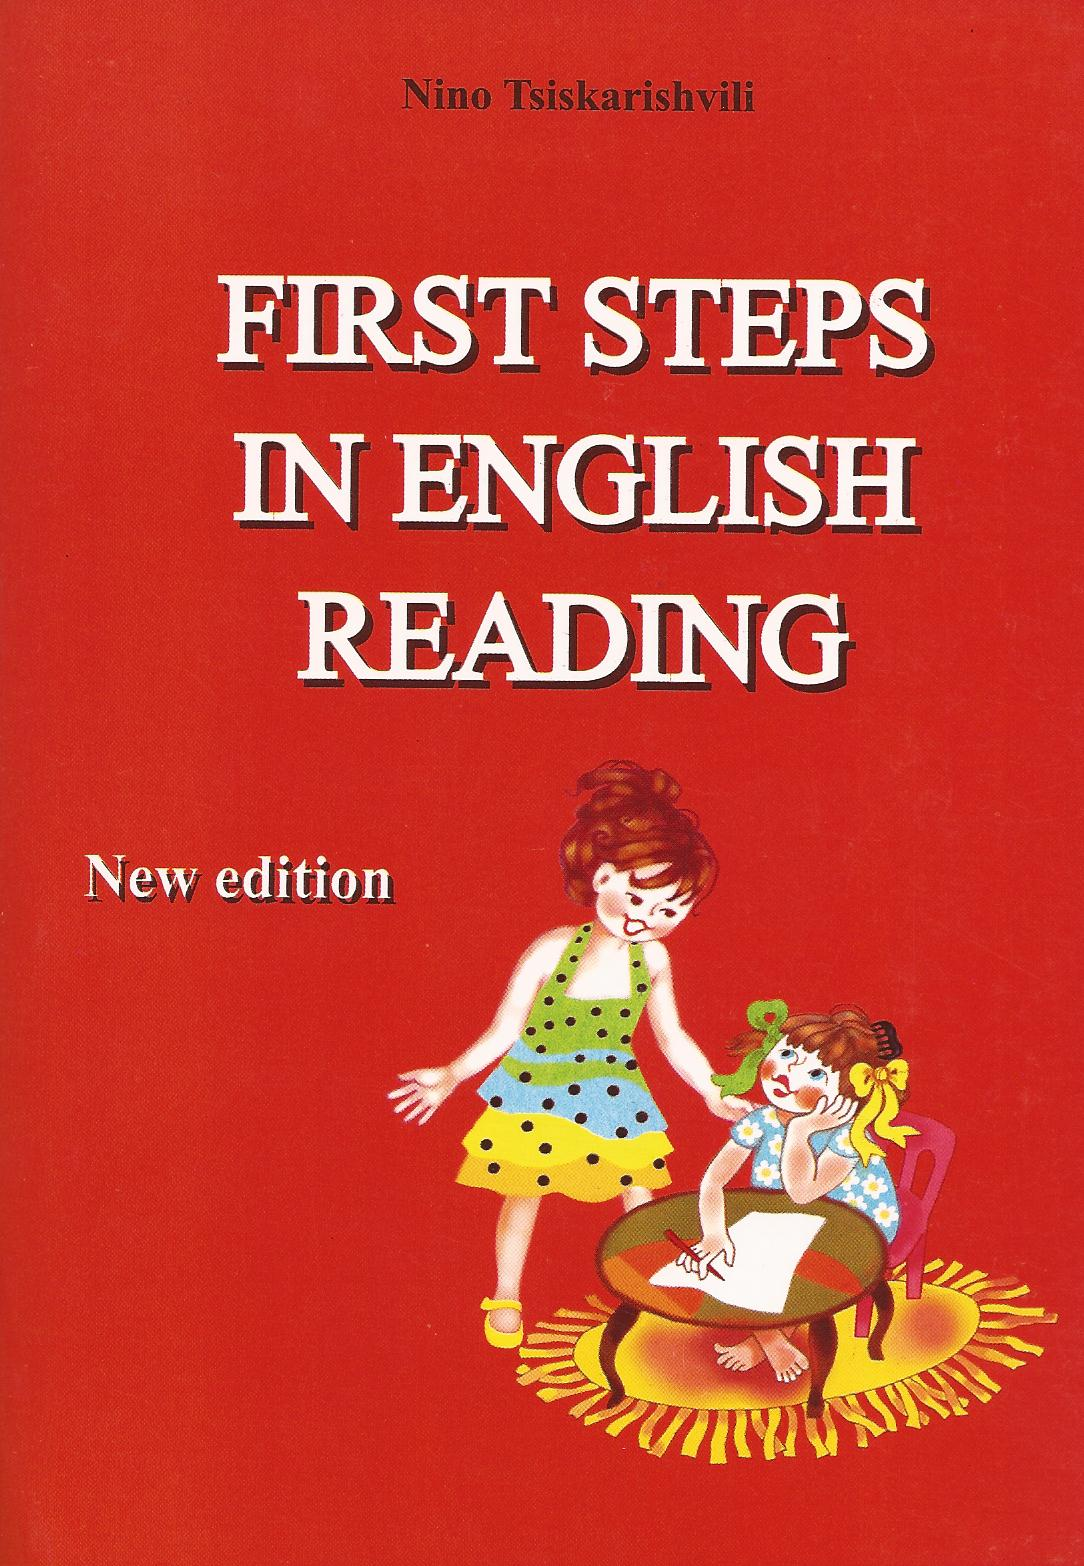 First Steps in English Reading (New Edition)